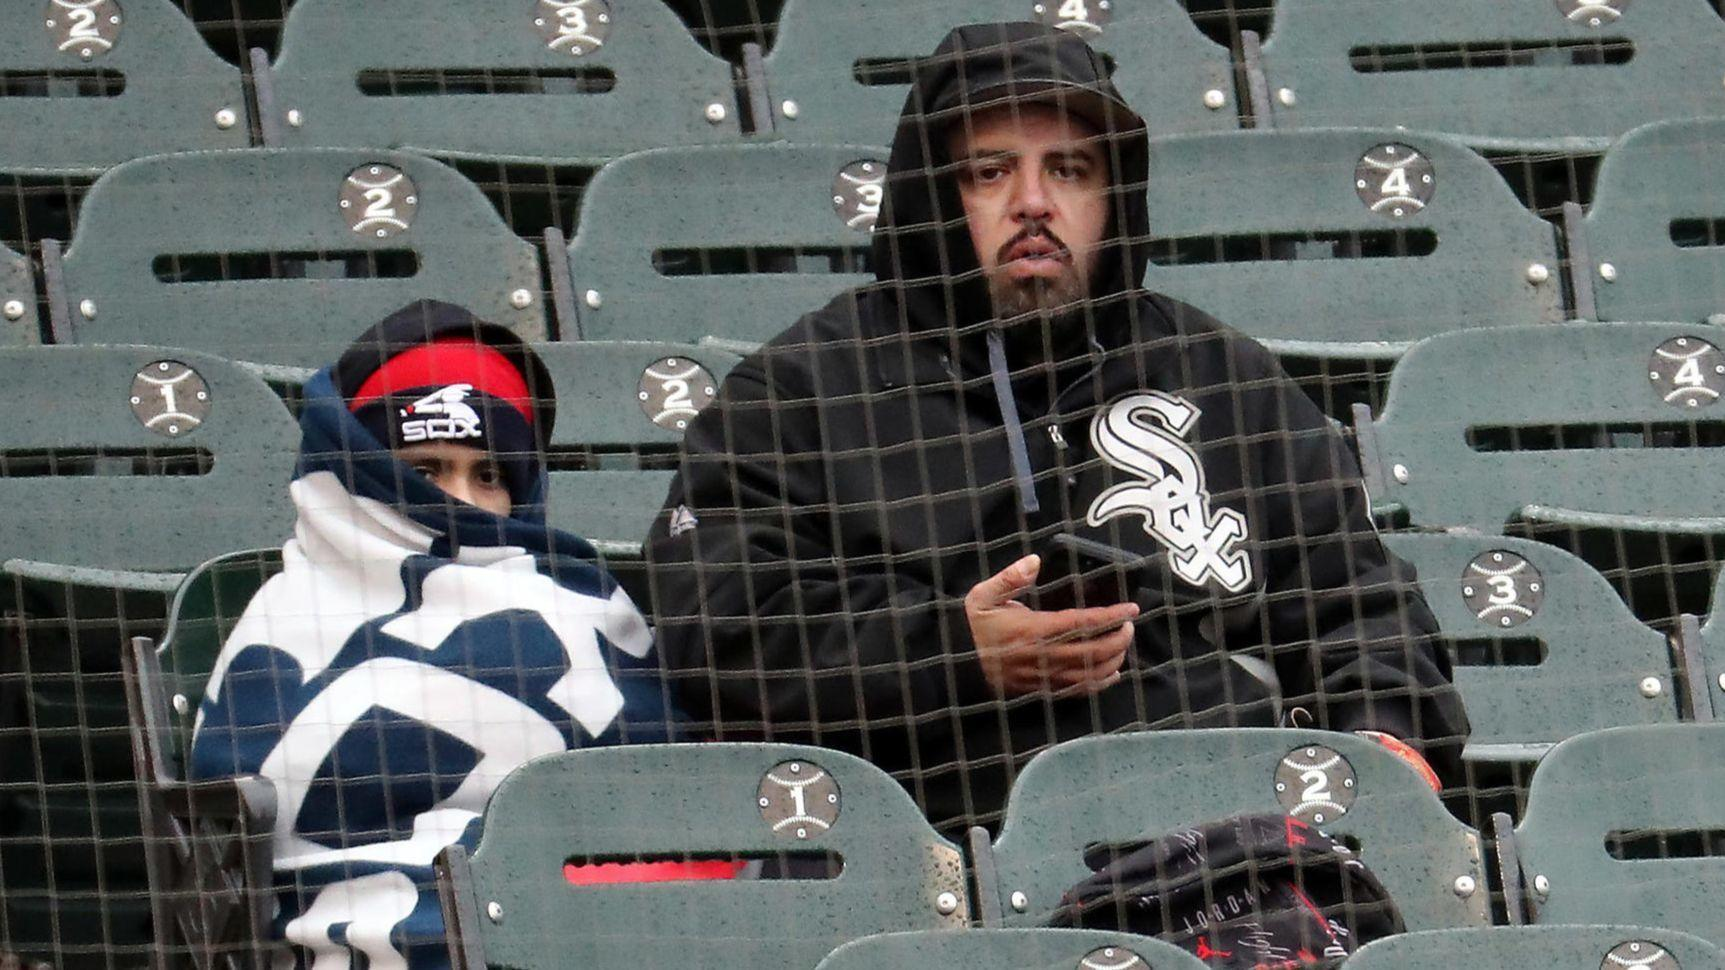 4c421f753f687 Cold weather and cold arms are a not-so-hot combination for Cubs and White  Sox fans